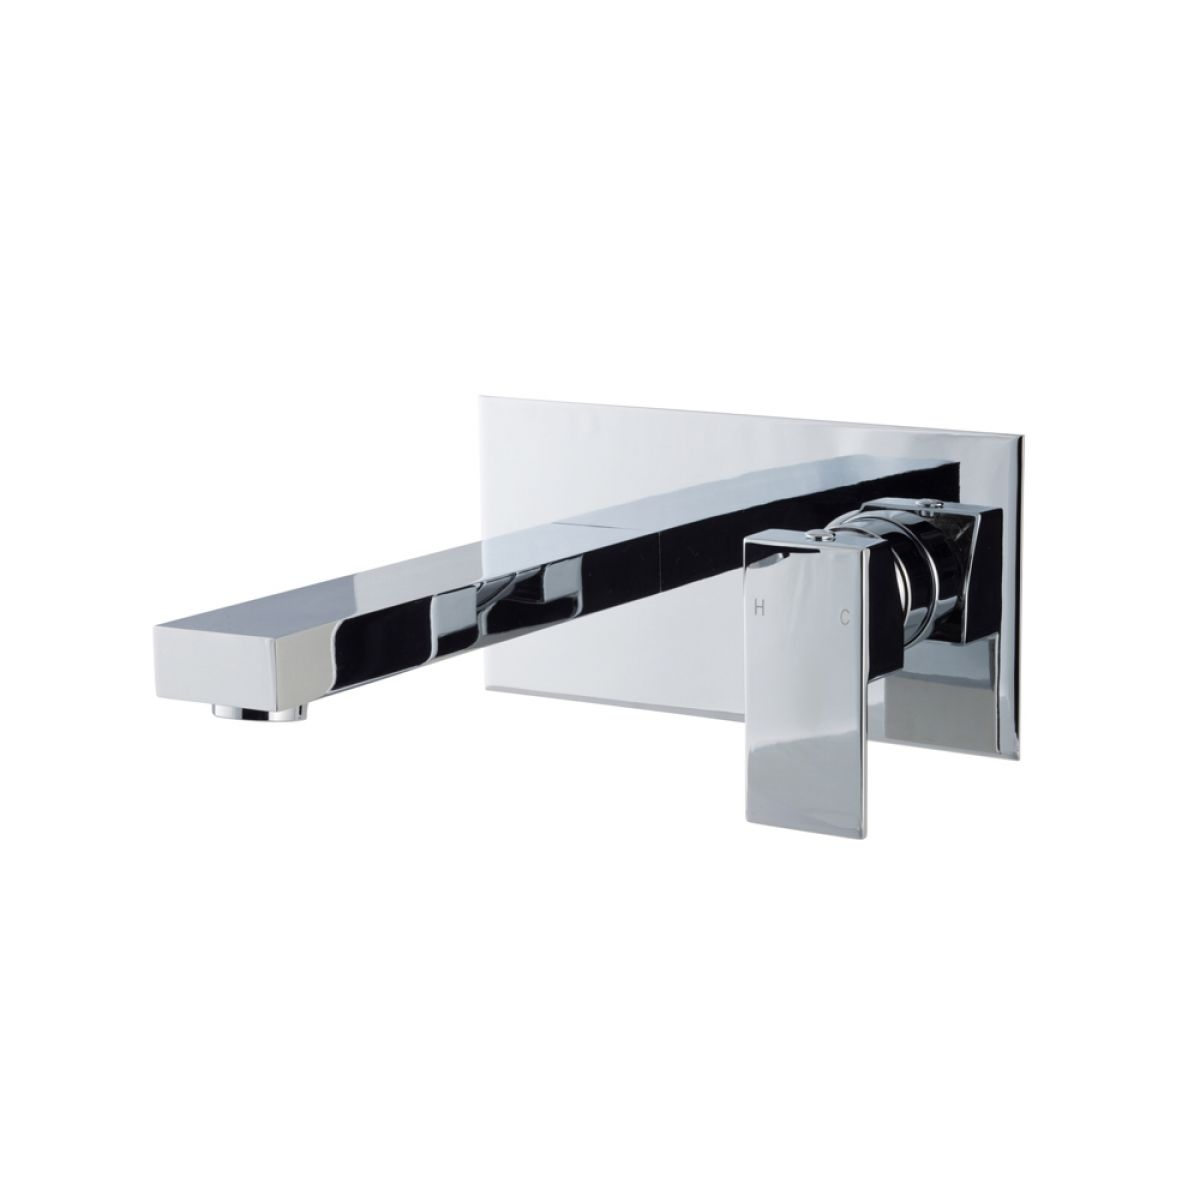 Zenith Form Wall Mounted Basin Mixer Tap